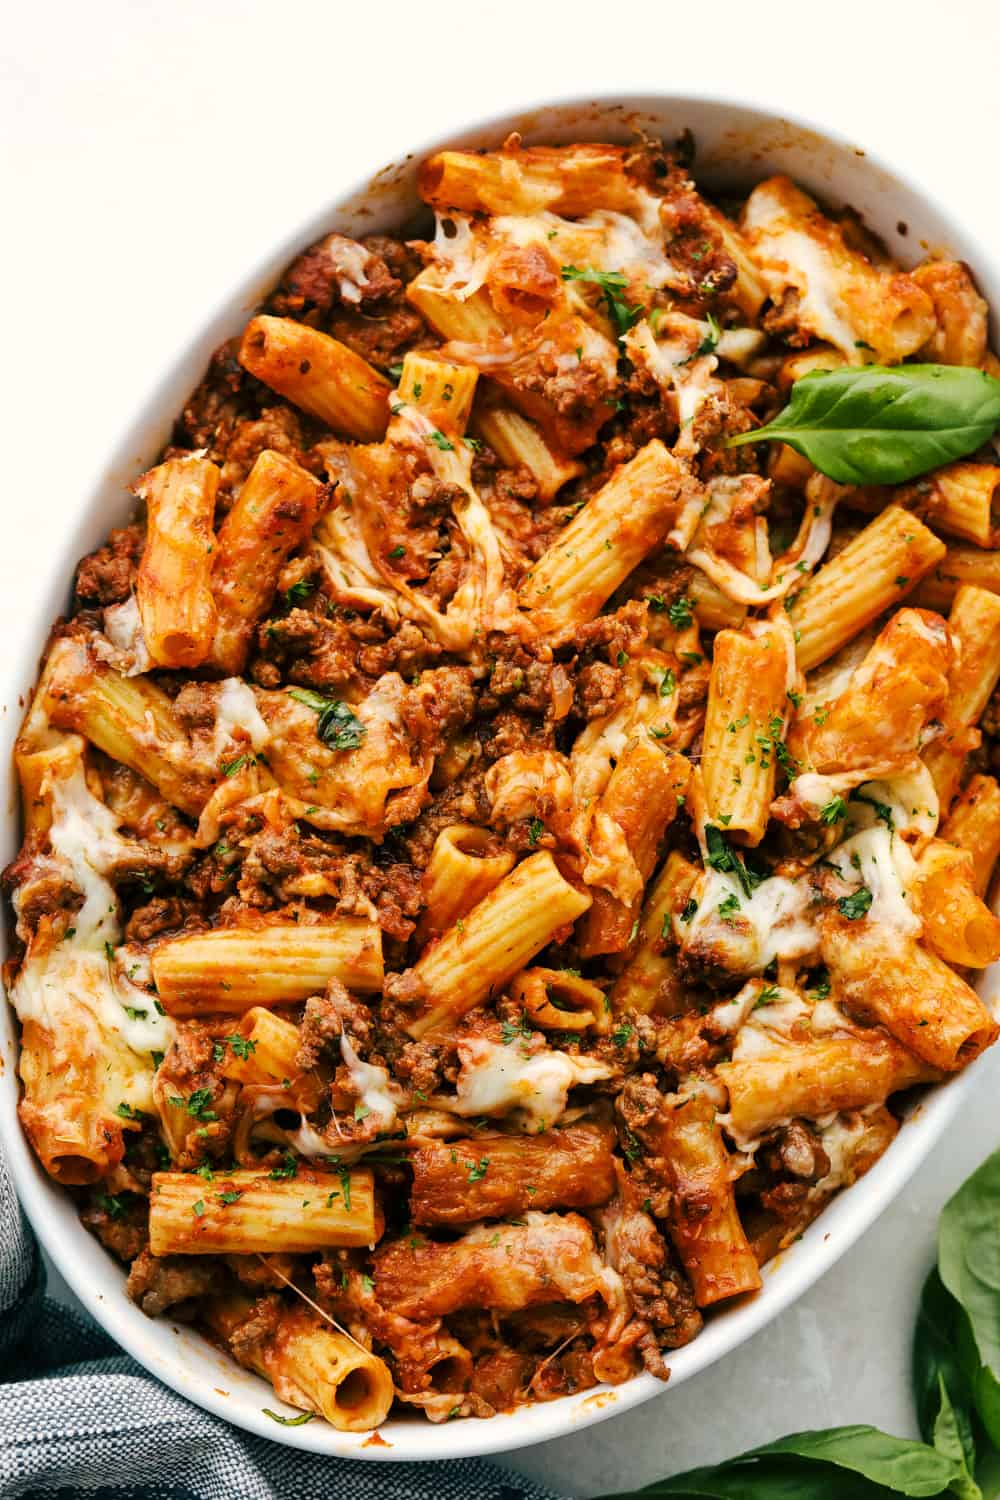 Baked rigatoni in a white bowl.